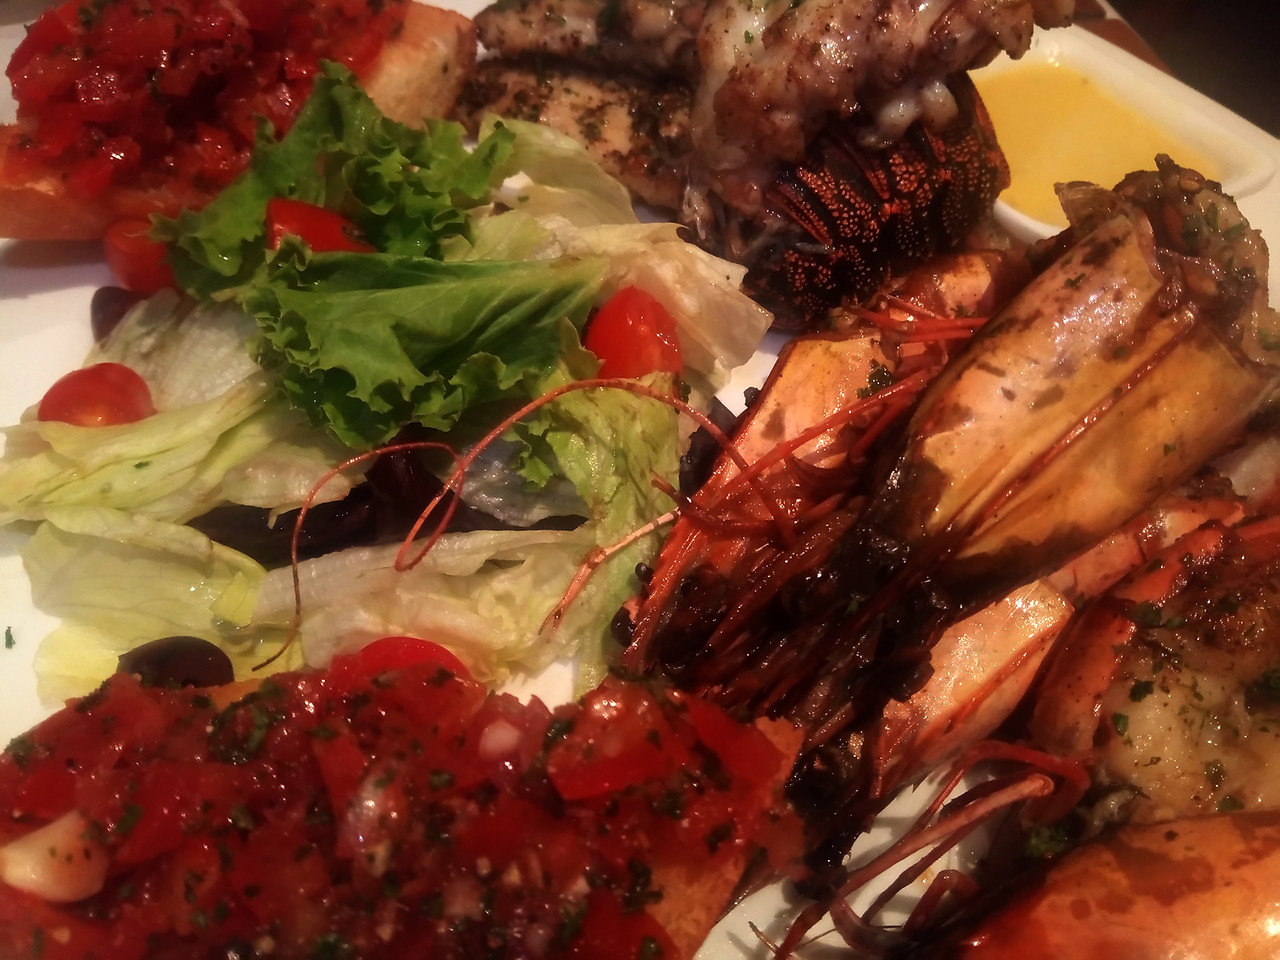 Sea food platter at Le Dupleix in Pondicherry, India